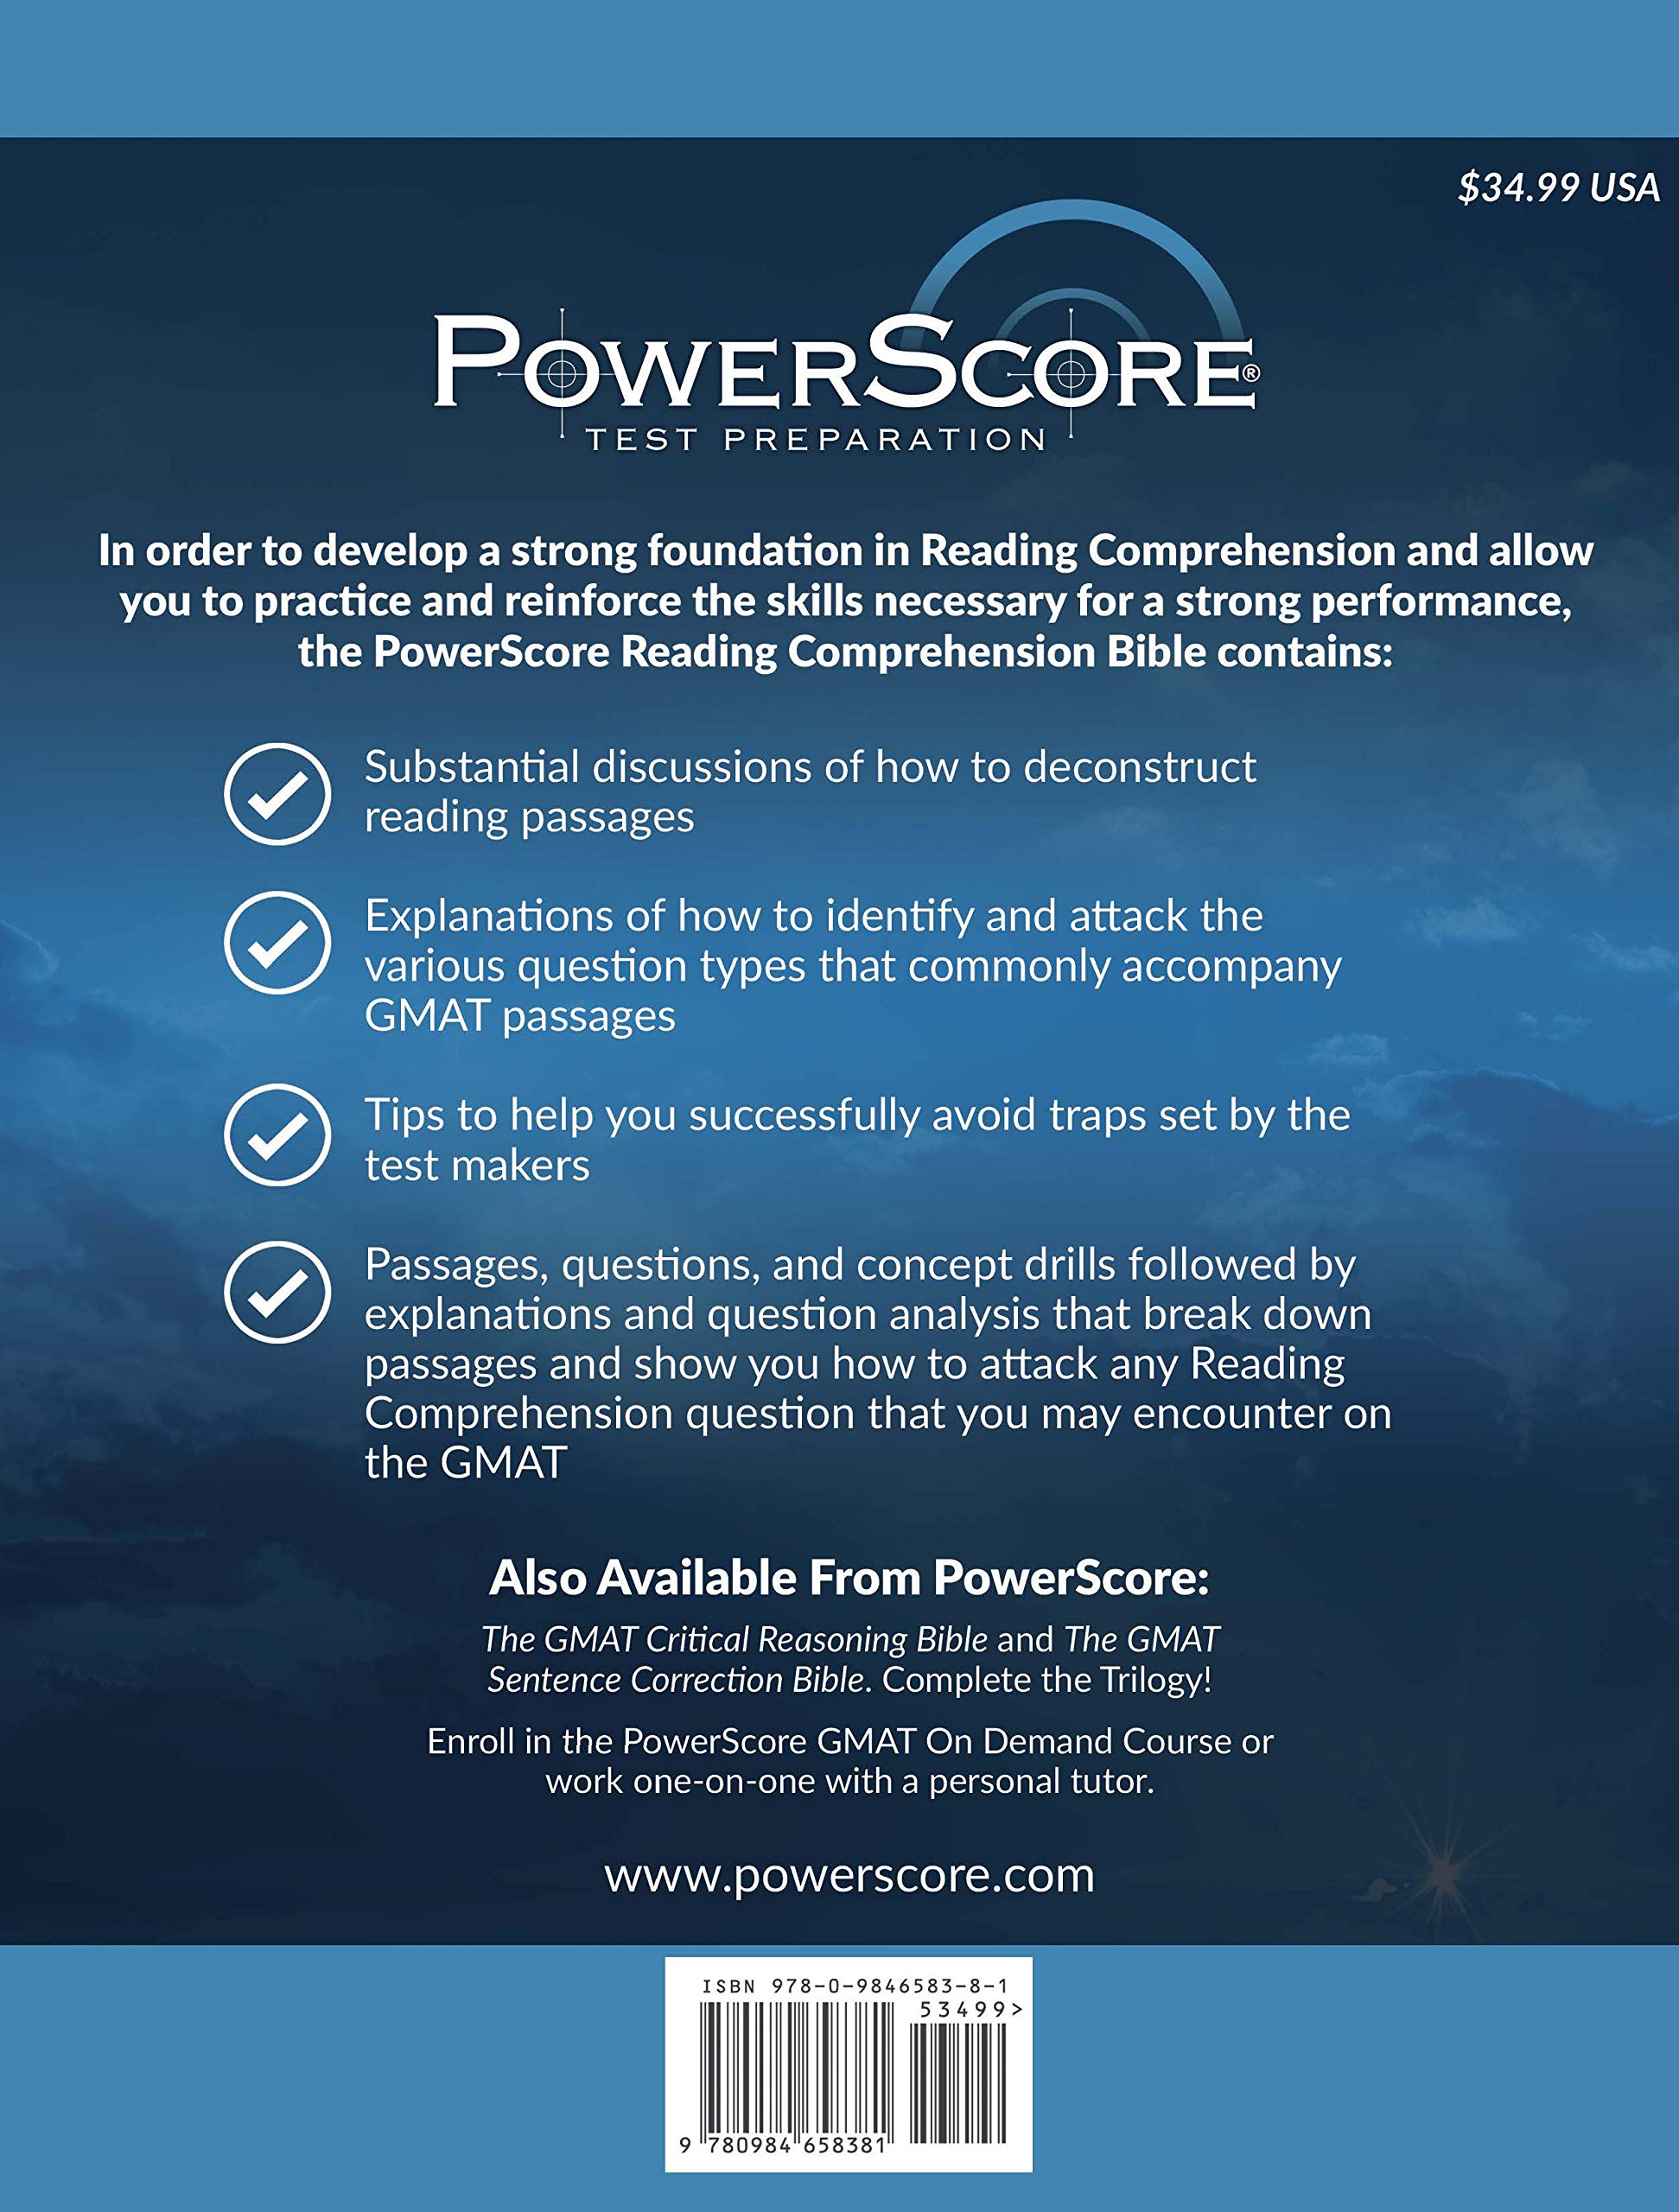 The Powerscore Gmat Reading Comprehension Bible A Comprehensive System For Attacking Gmat Reading Comprehension Questions David M Killoran Jon M Denning 9780984658381 Amazon Com Books